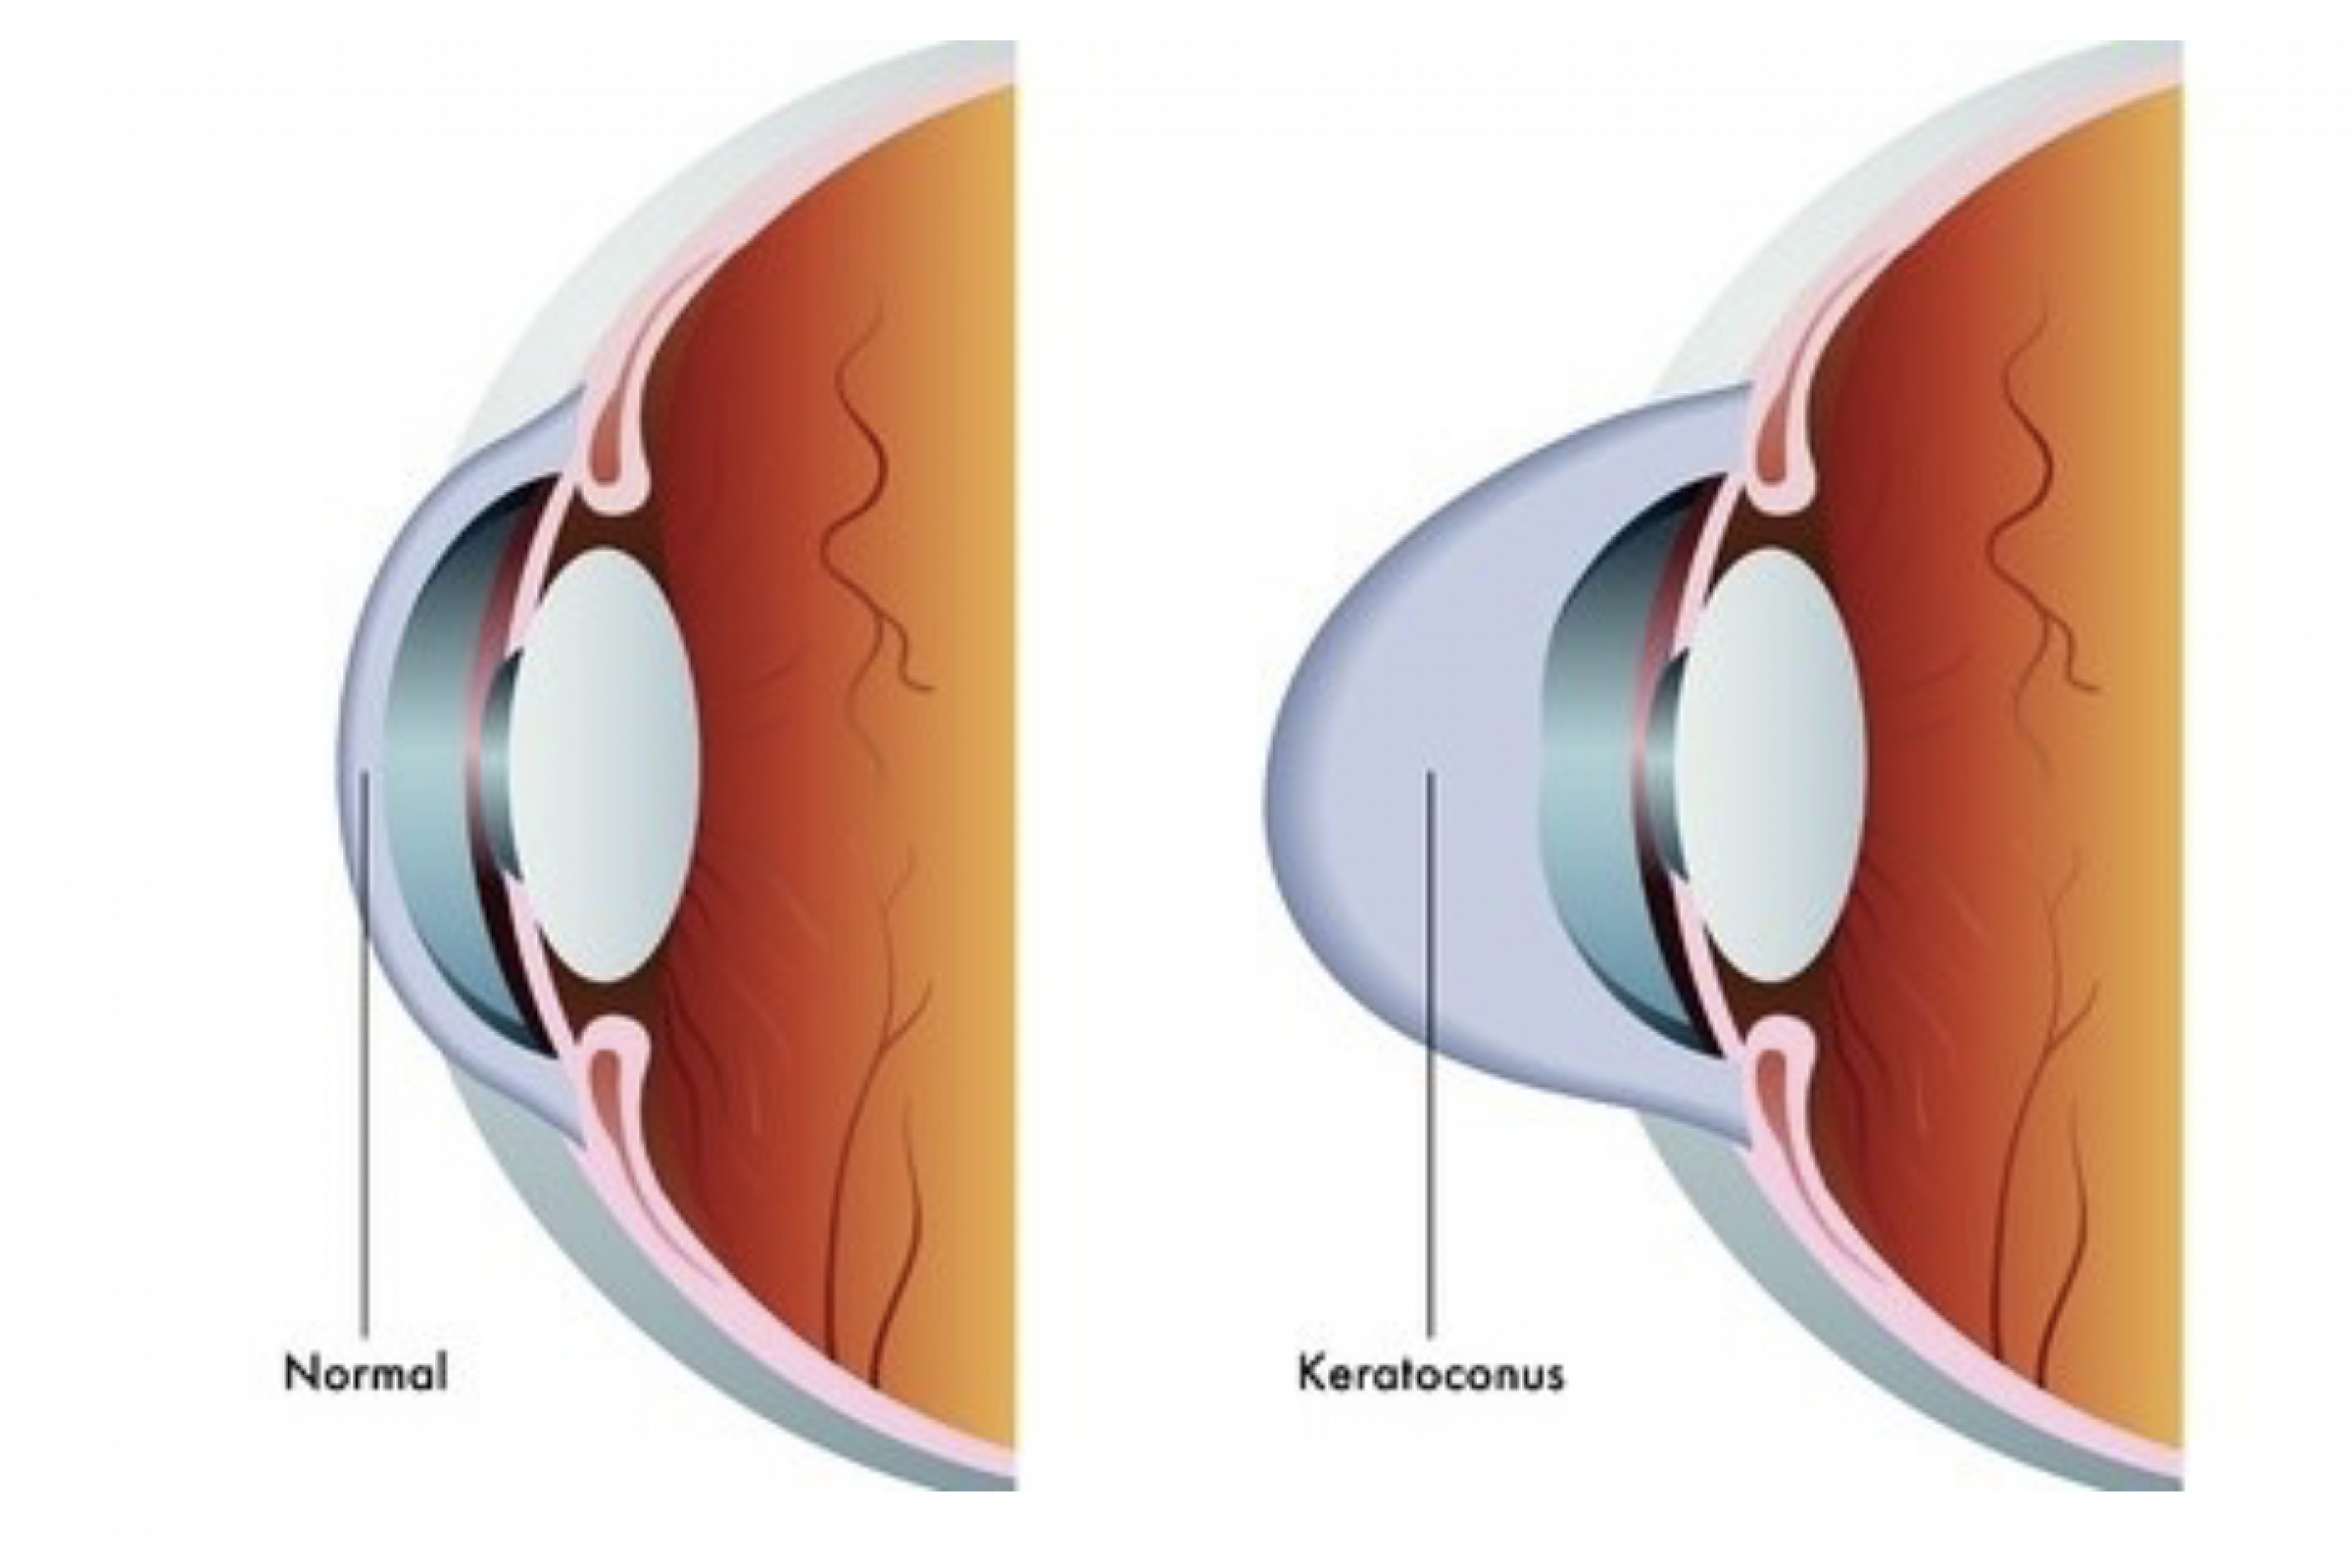 <h1>Keratoconus</h1>